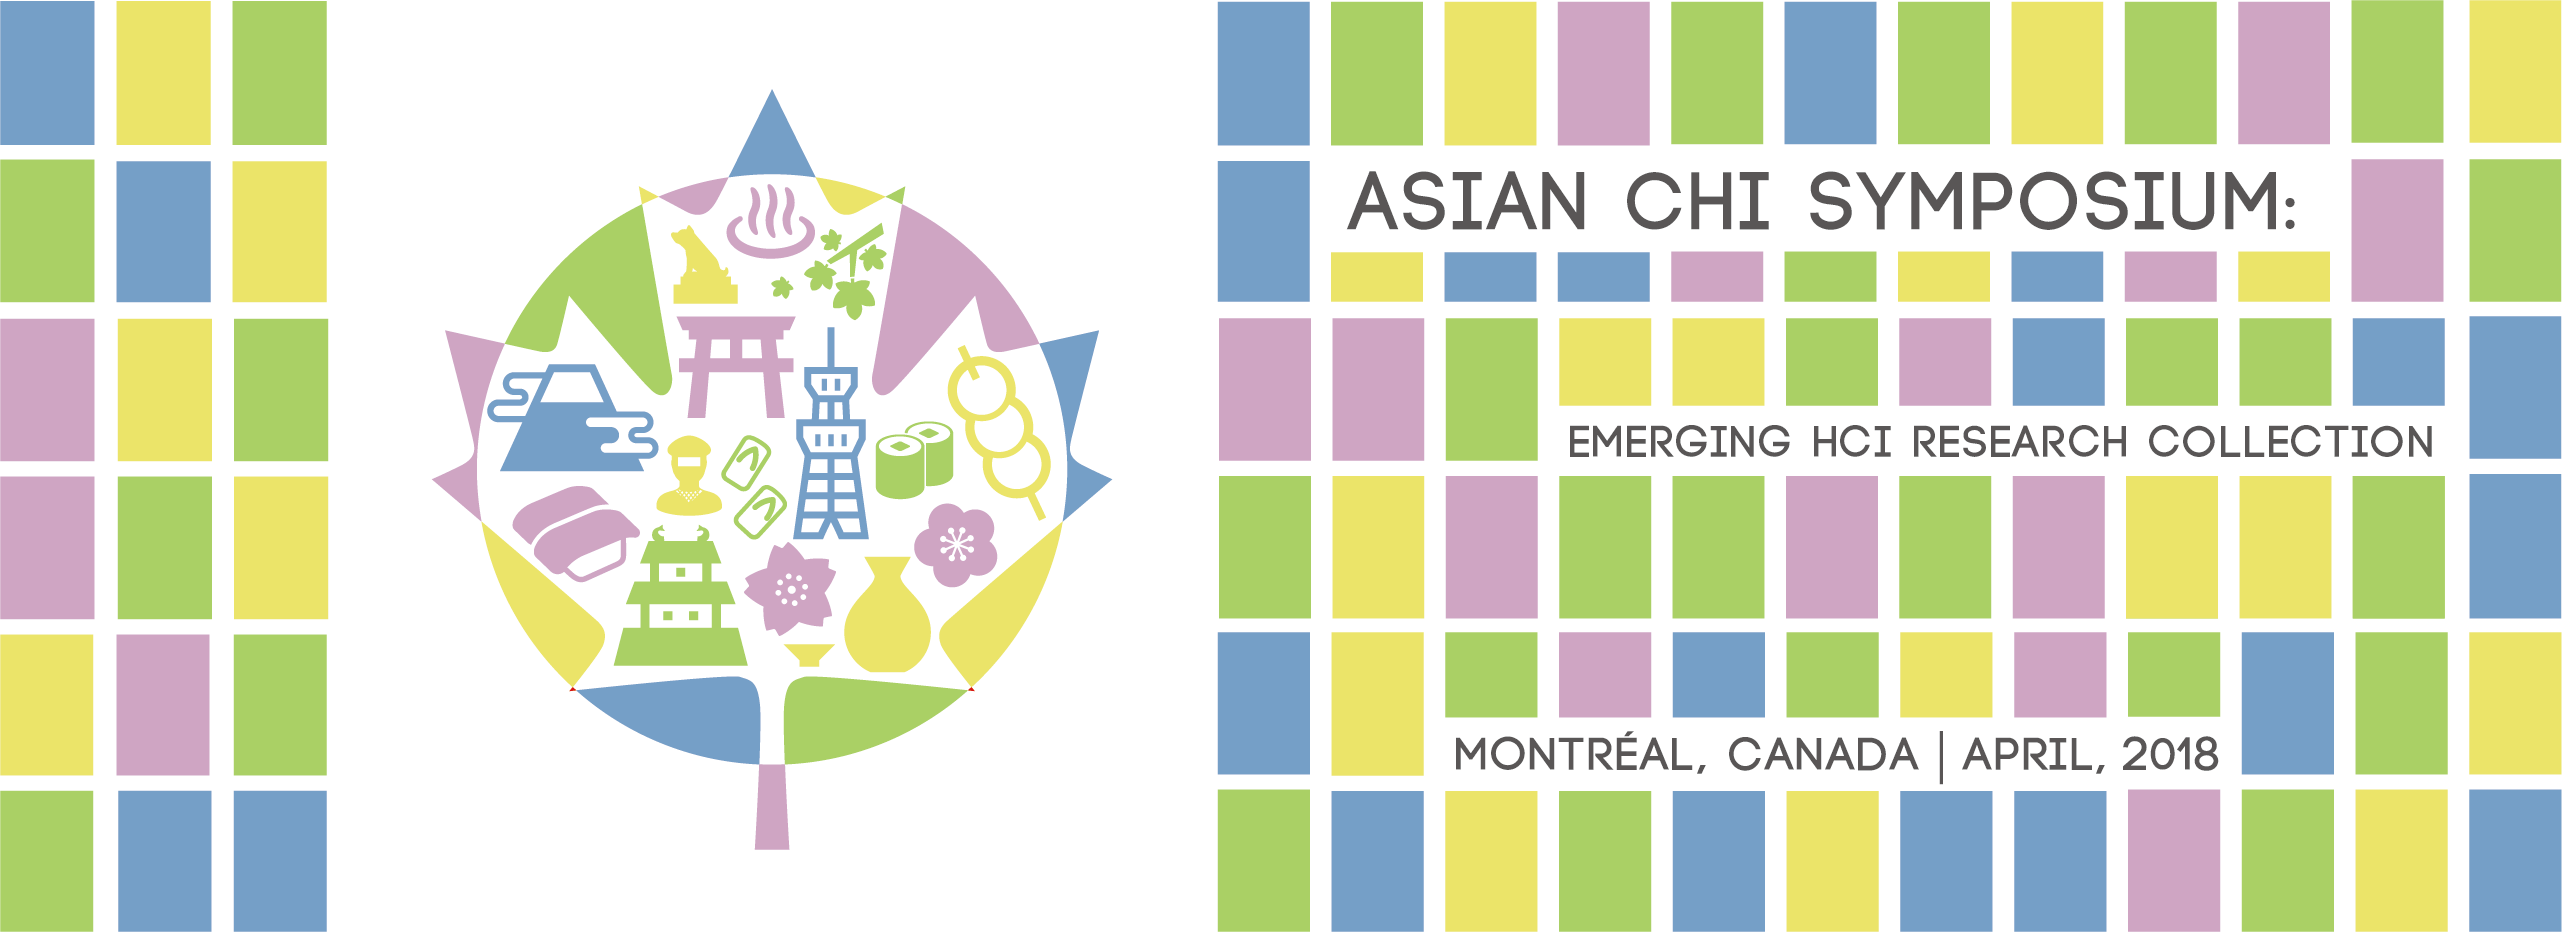 Asian CHI symposium: Emerging HCI Research Collection